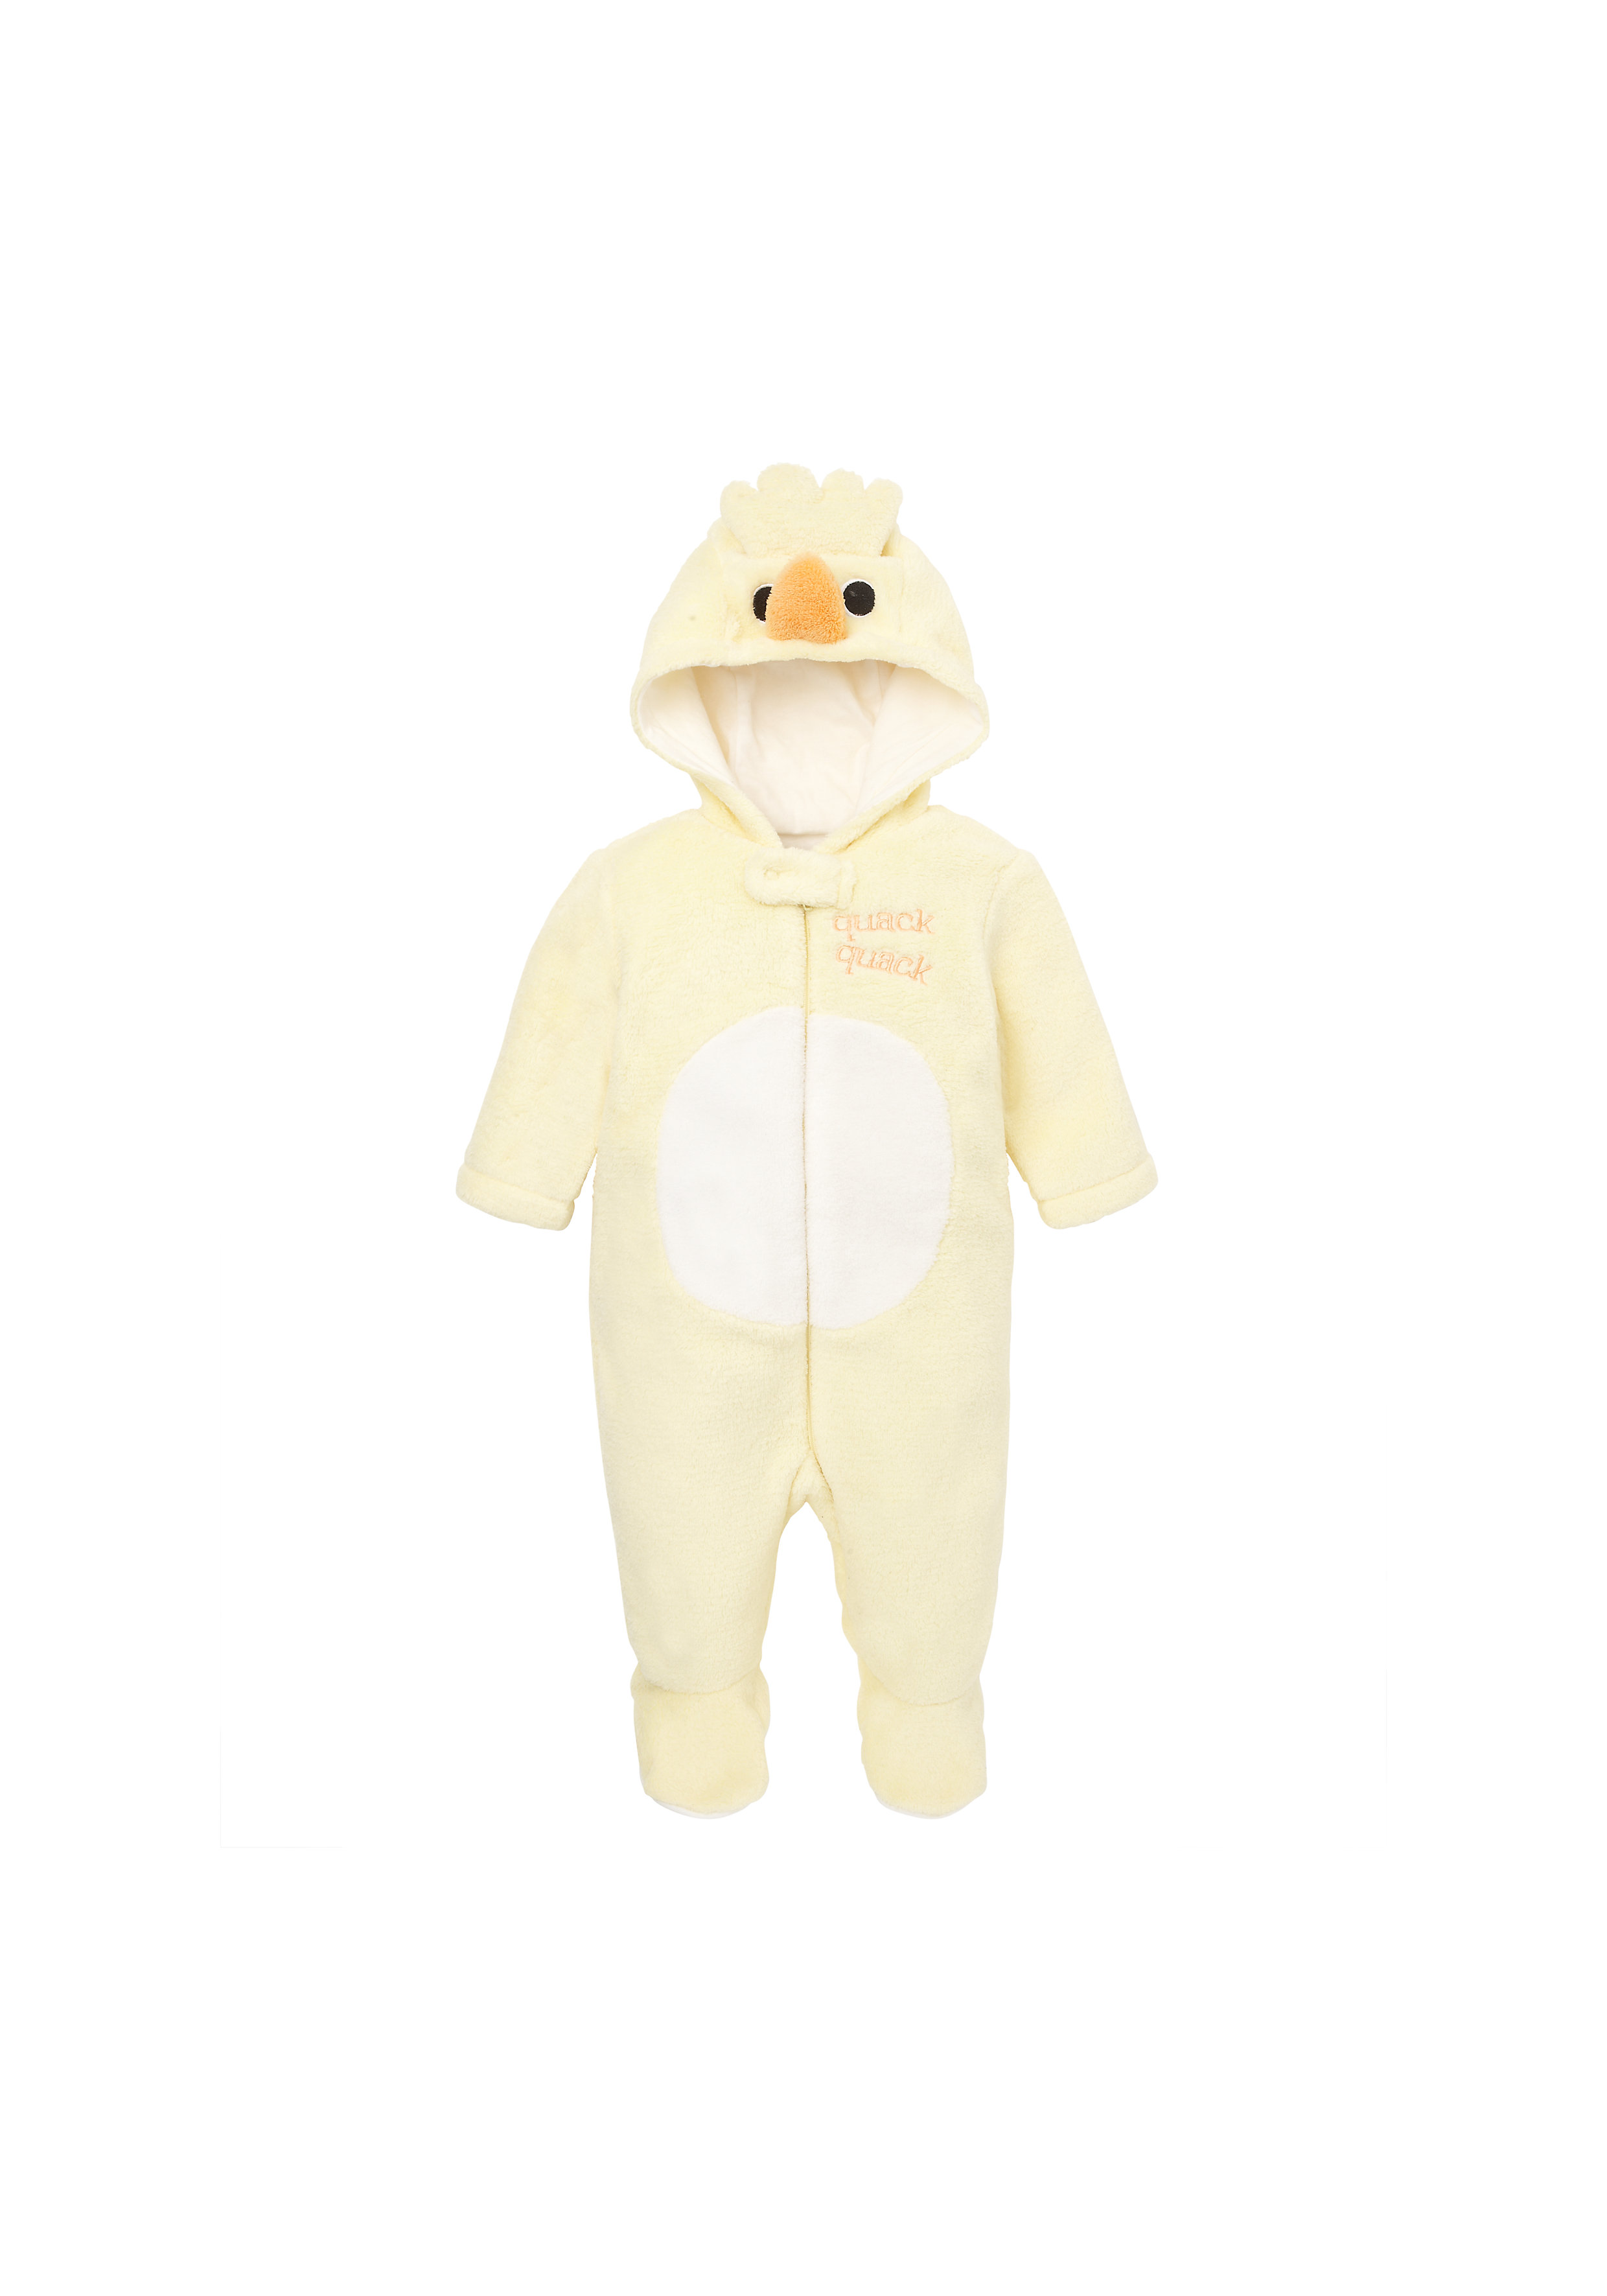 Mothercare   Unisex Full Sleeves Sleepsuit And Hat Dress Up Duck Design - Yellow